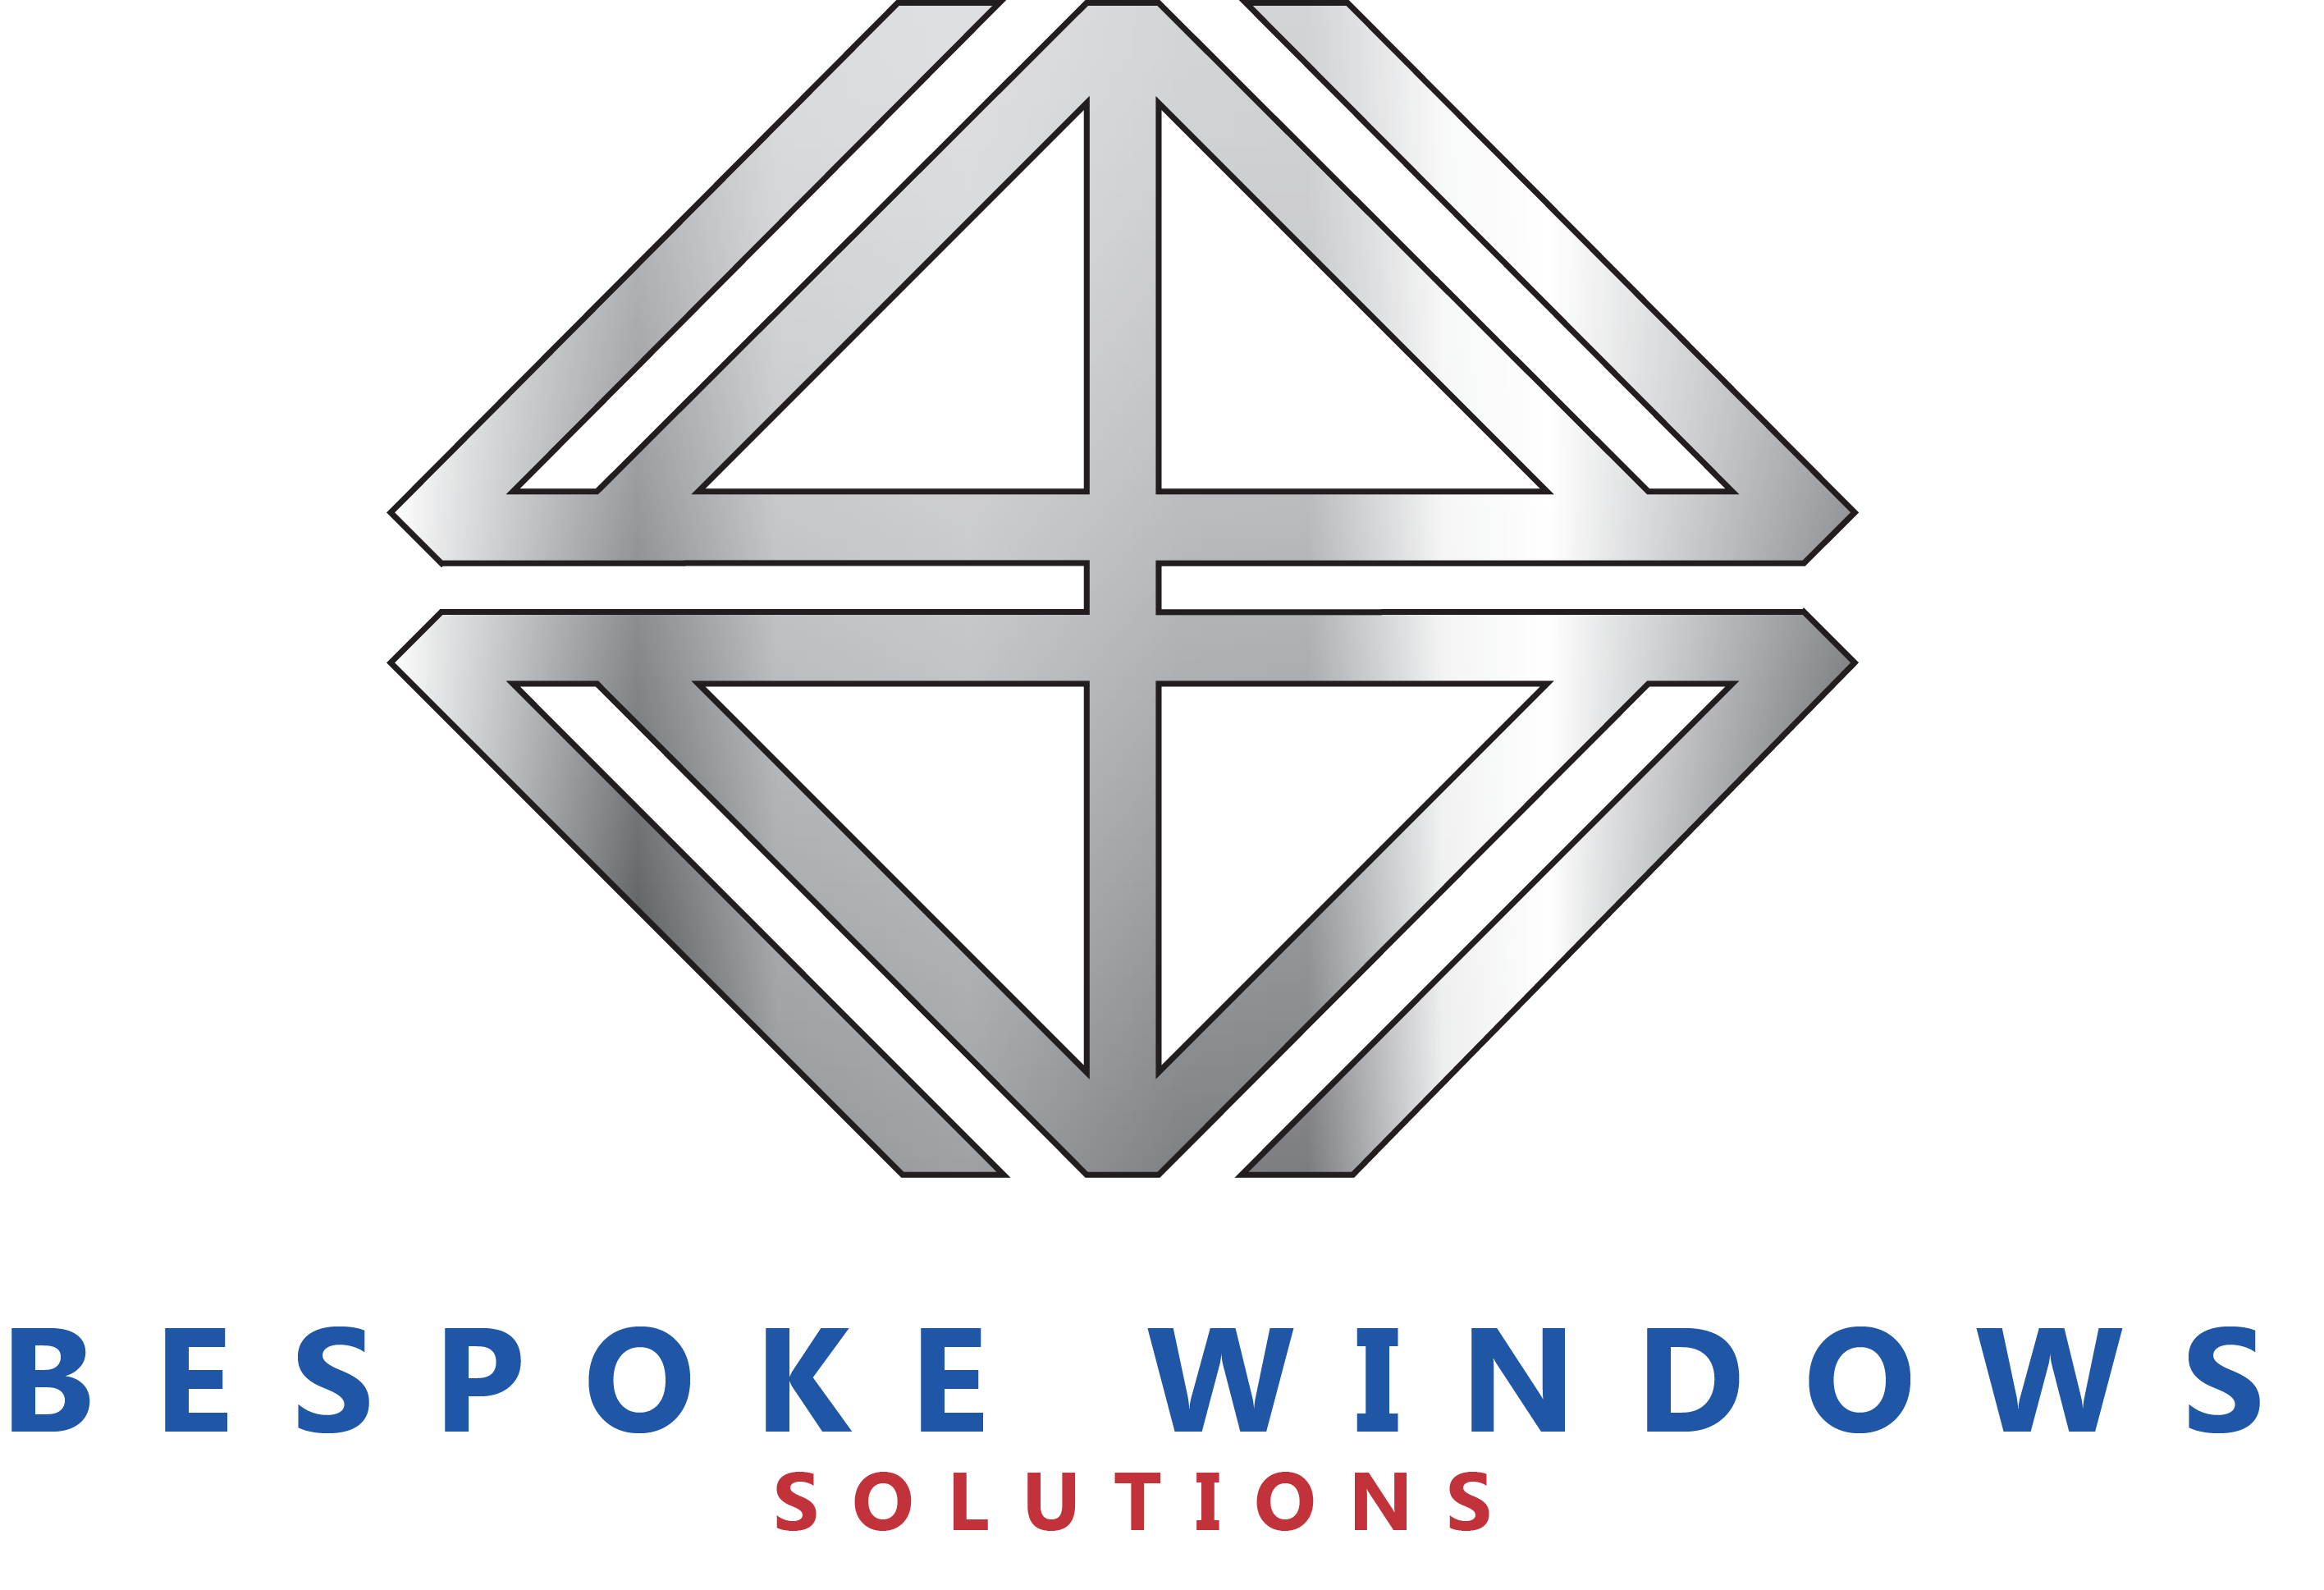 Bespoke Windows Solutions